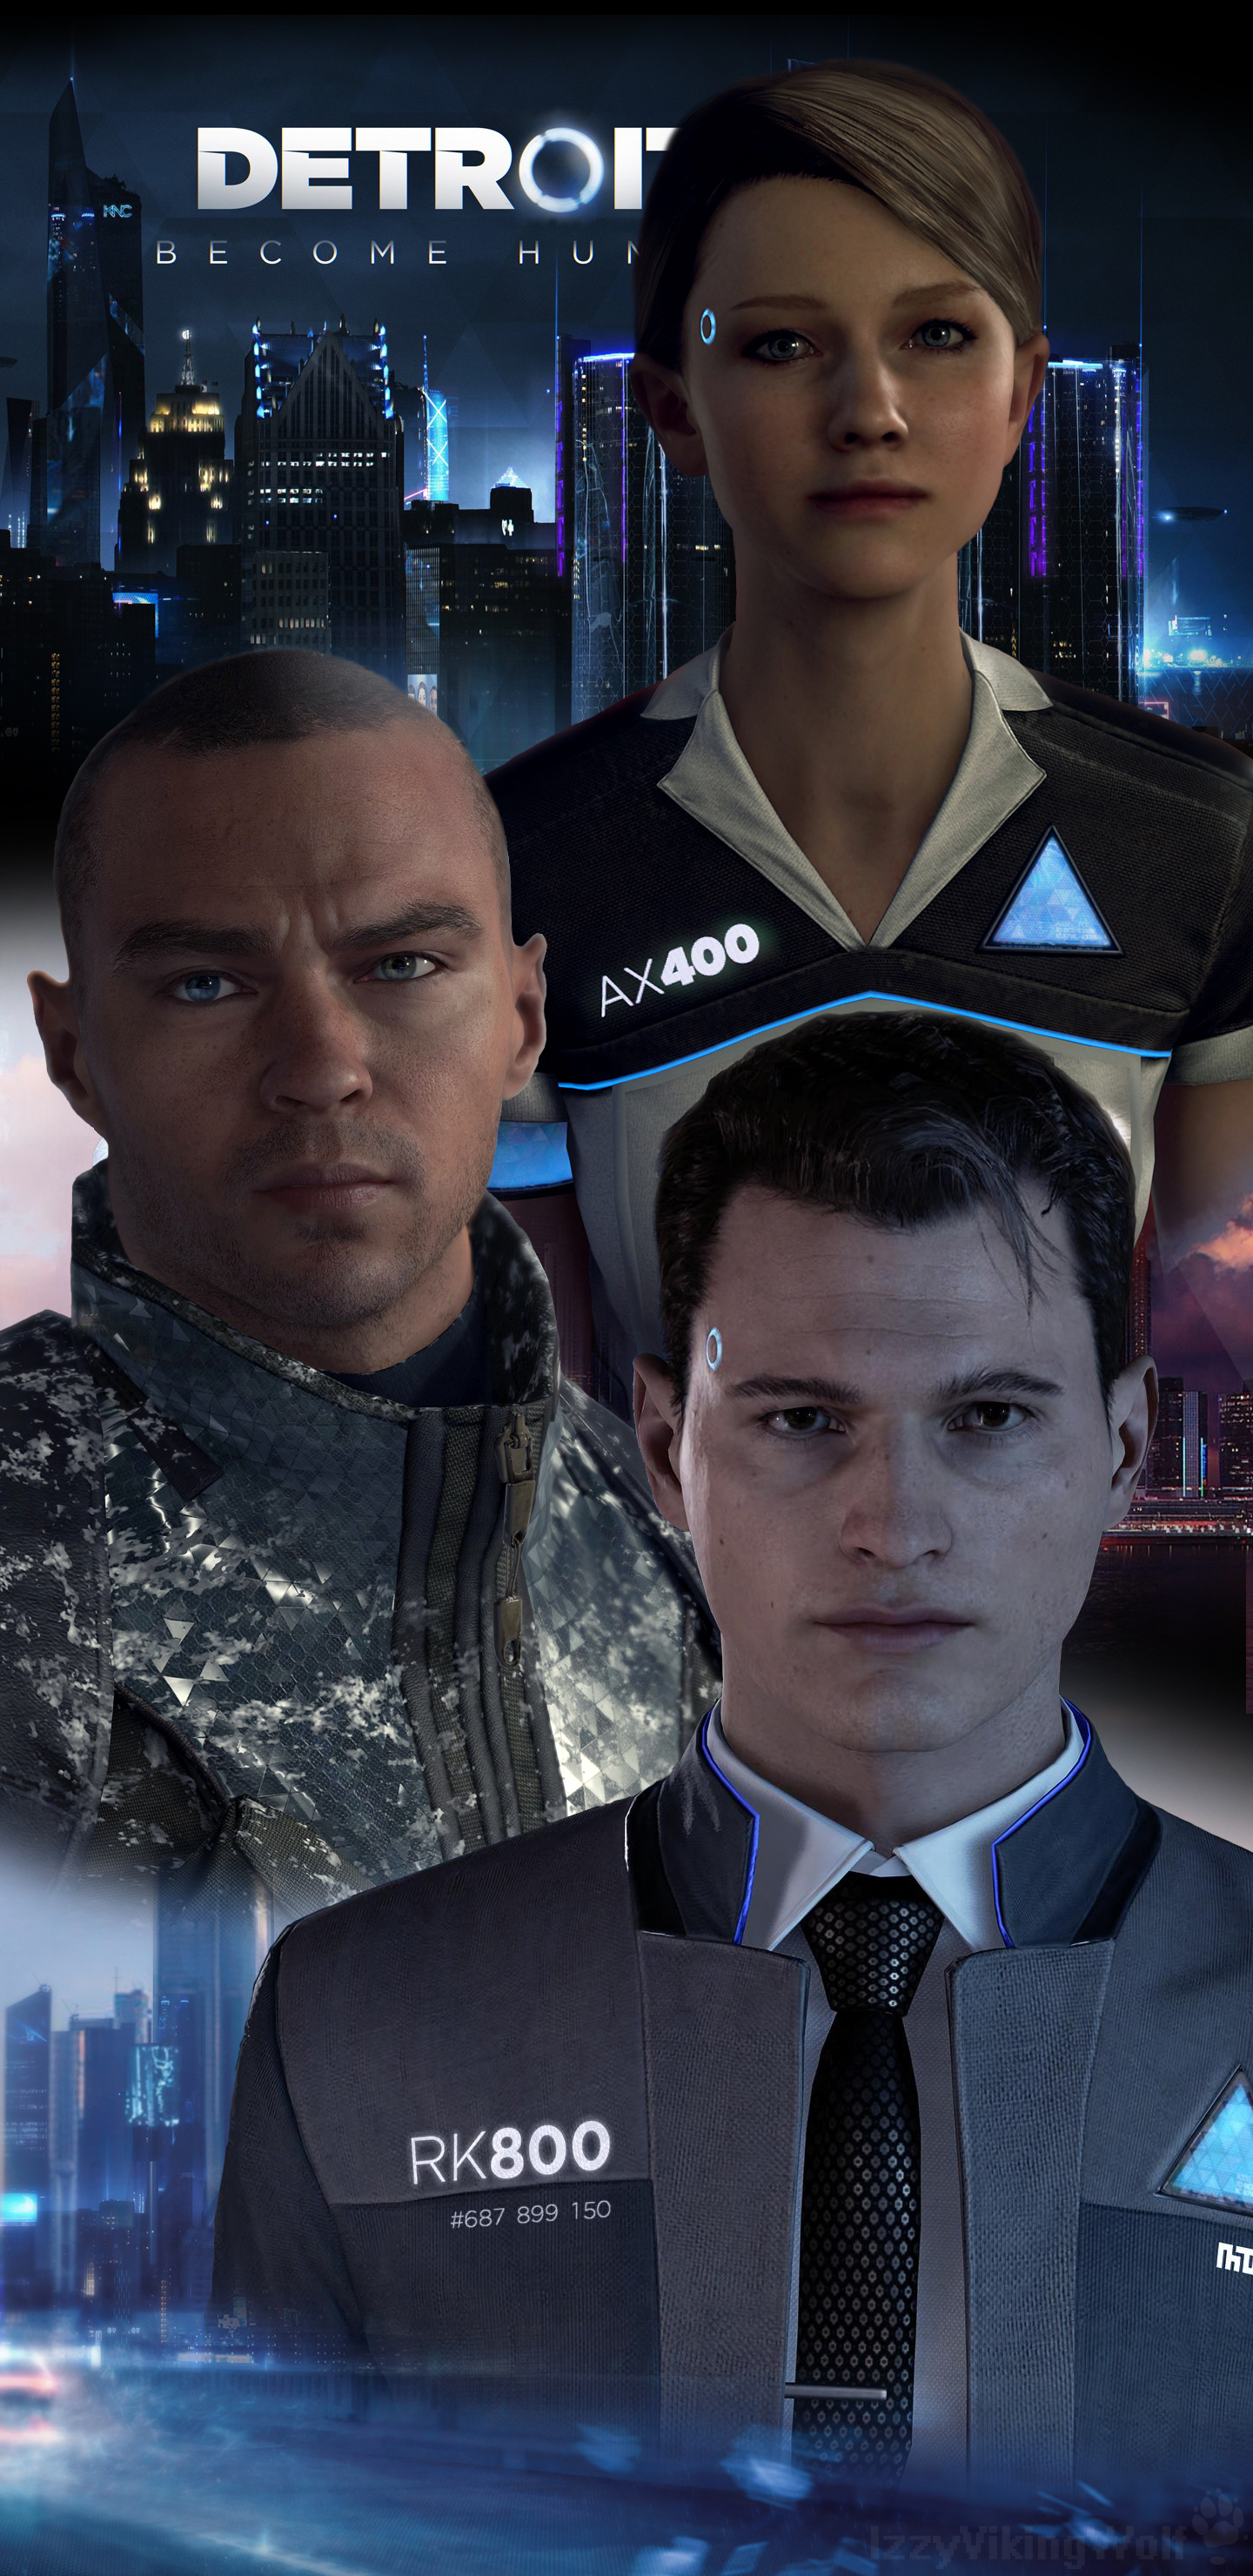 Detroit Become Human Samsung Galaxys8 Wallpaper By